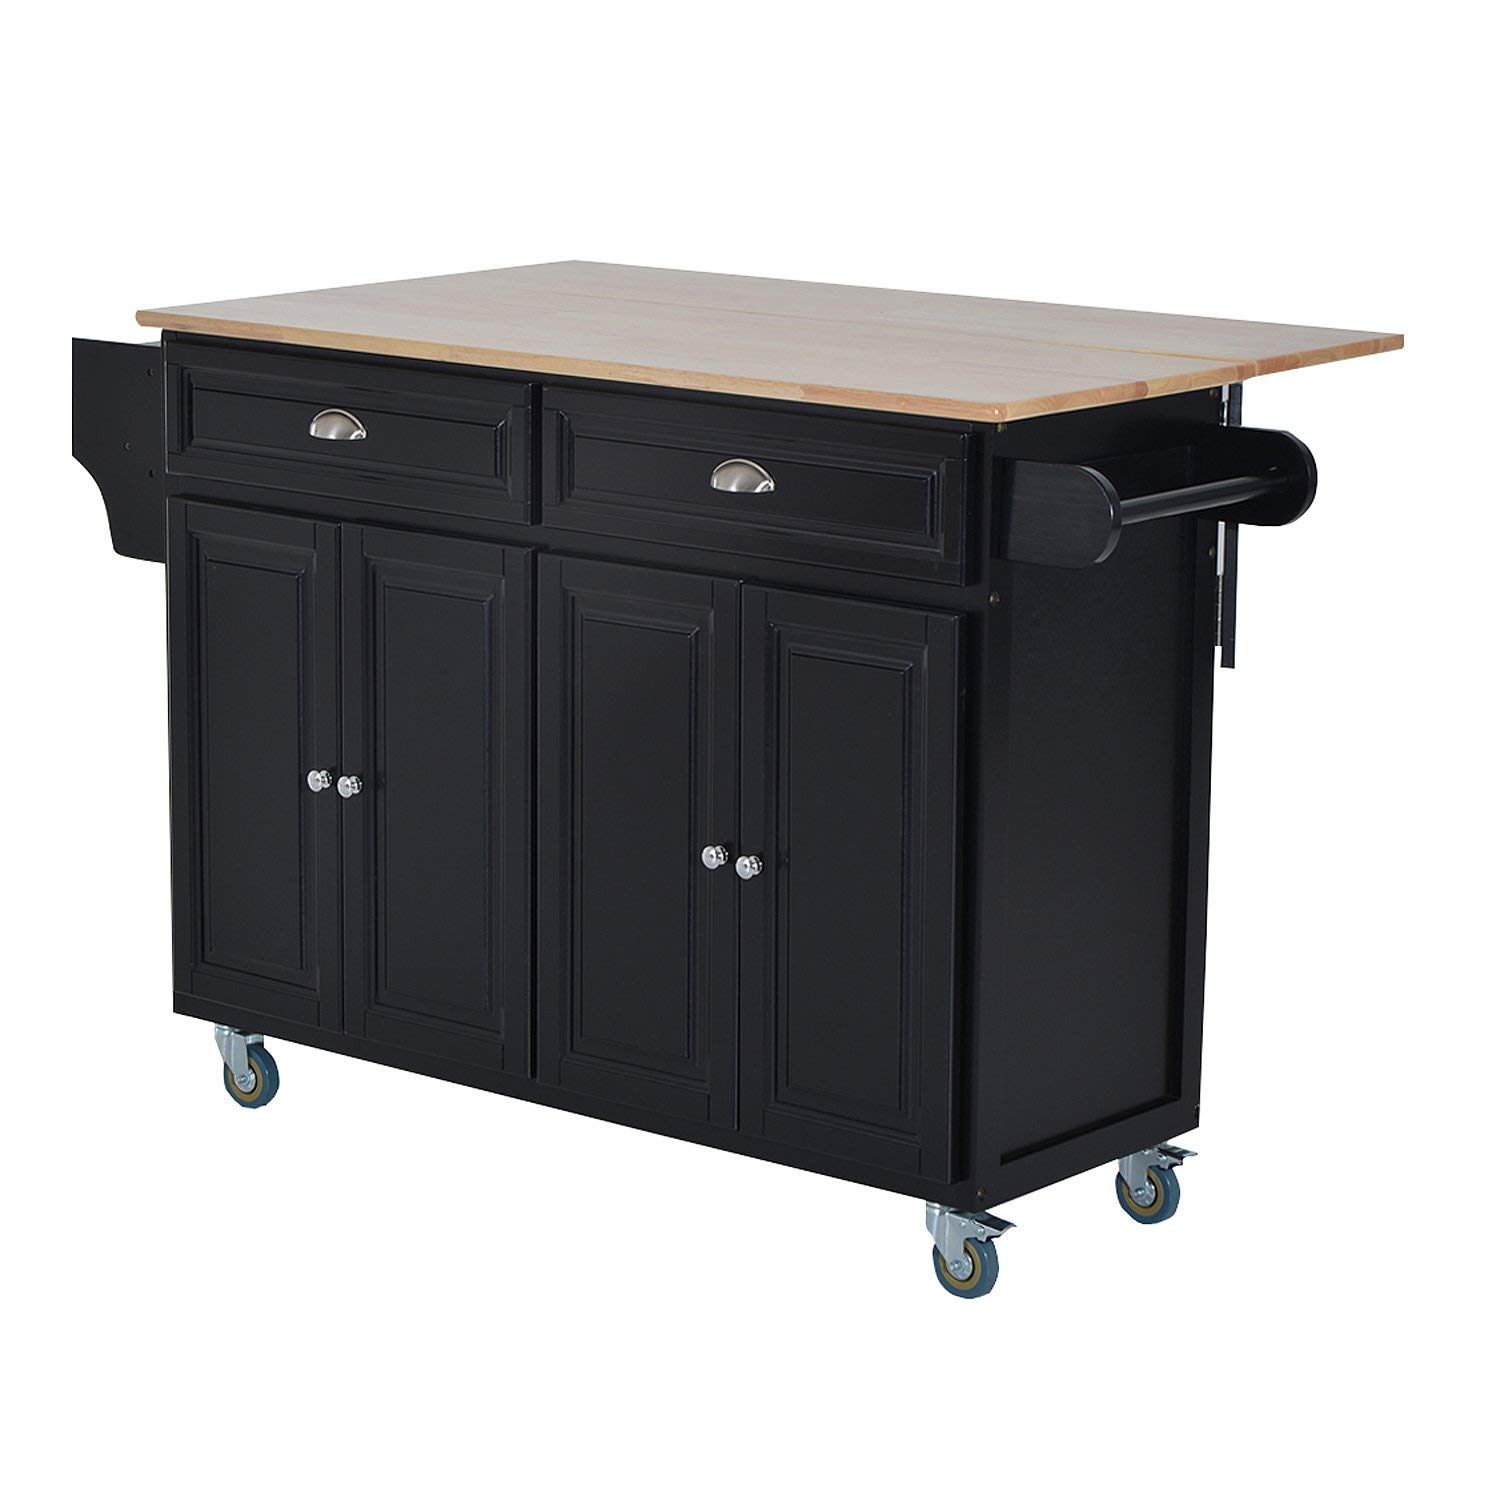 HOMCOM Wooden Top Drop-Leaf Rolling Kitchen Island Table Cart with Storage Cabinets - Black